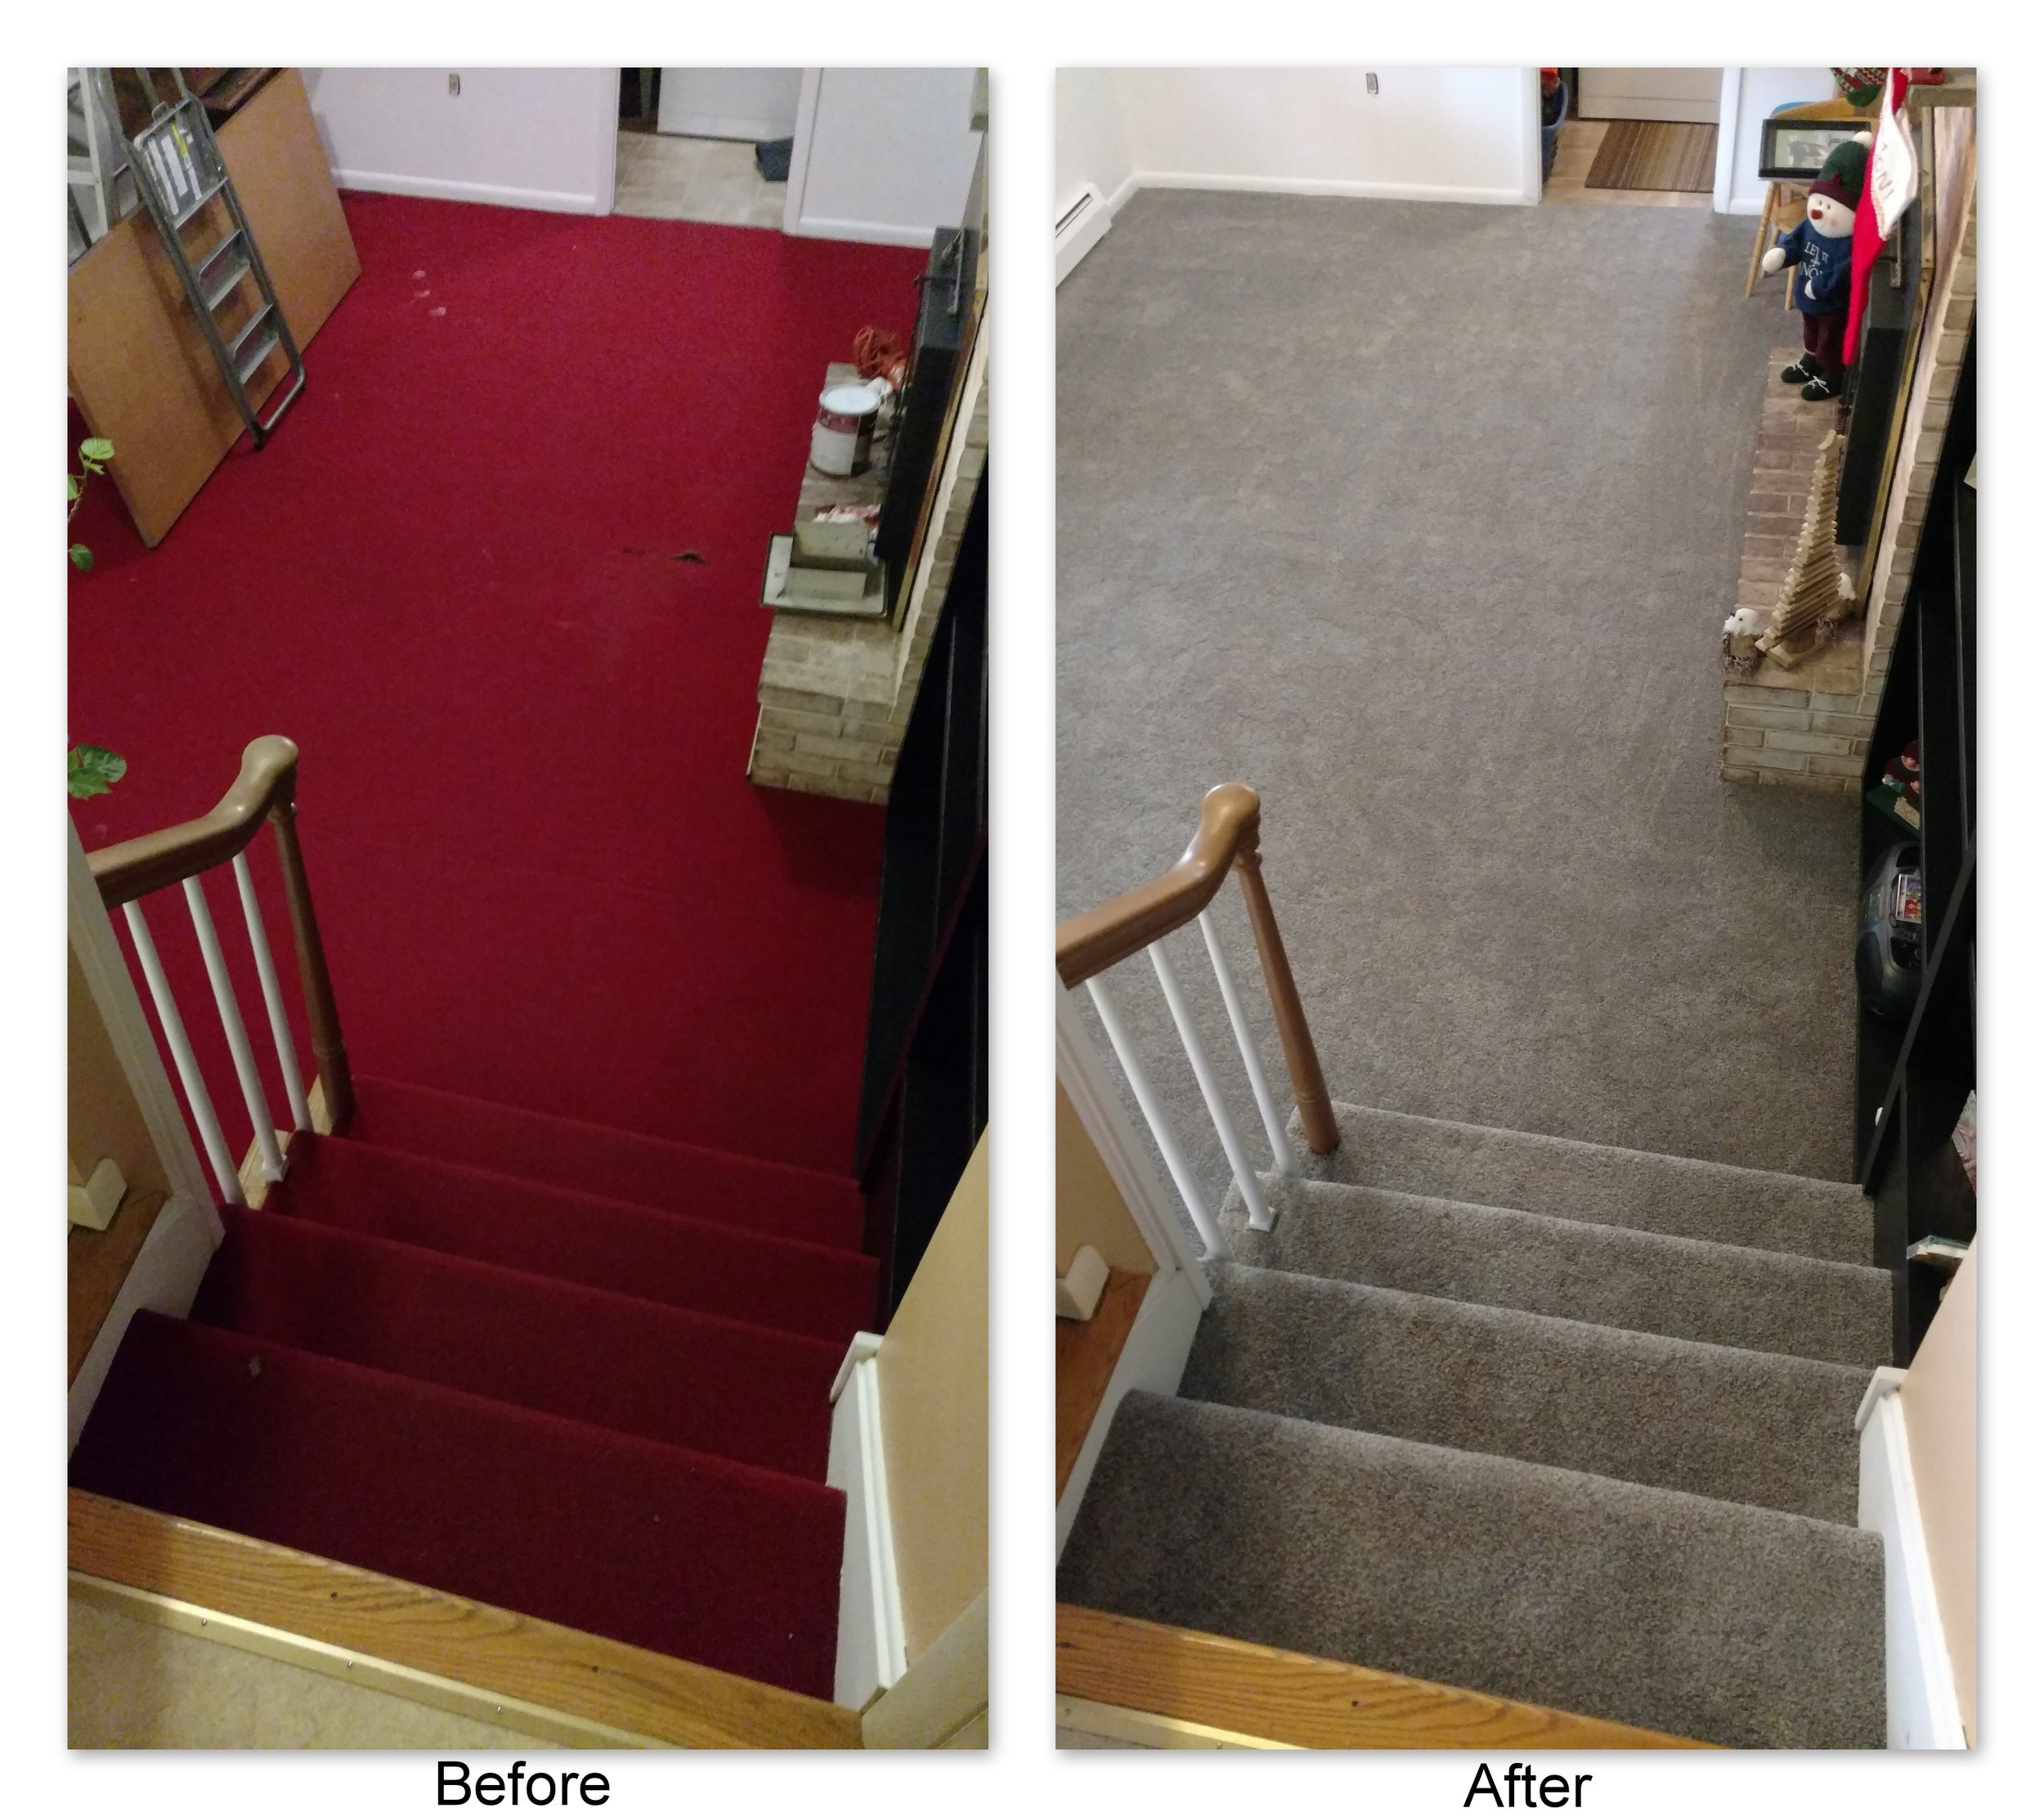 From ugly regal red to classy grey multiflec, Frank & Tonya's carpet choice of Tigressa SoftStyle Sakti Carpet in the color Sundial updated their sunken family room from 70s red into an inviting space for the grandkids to play!